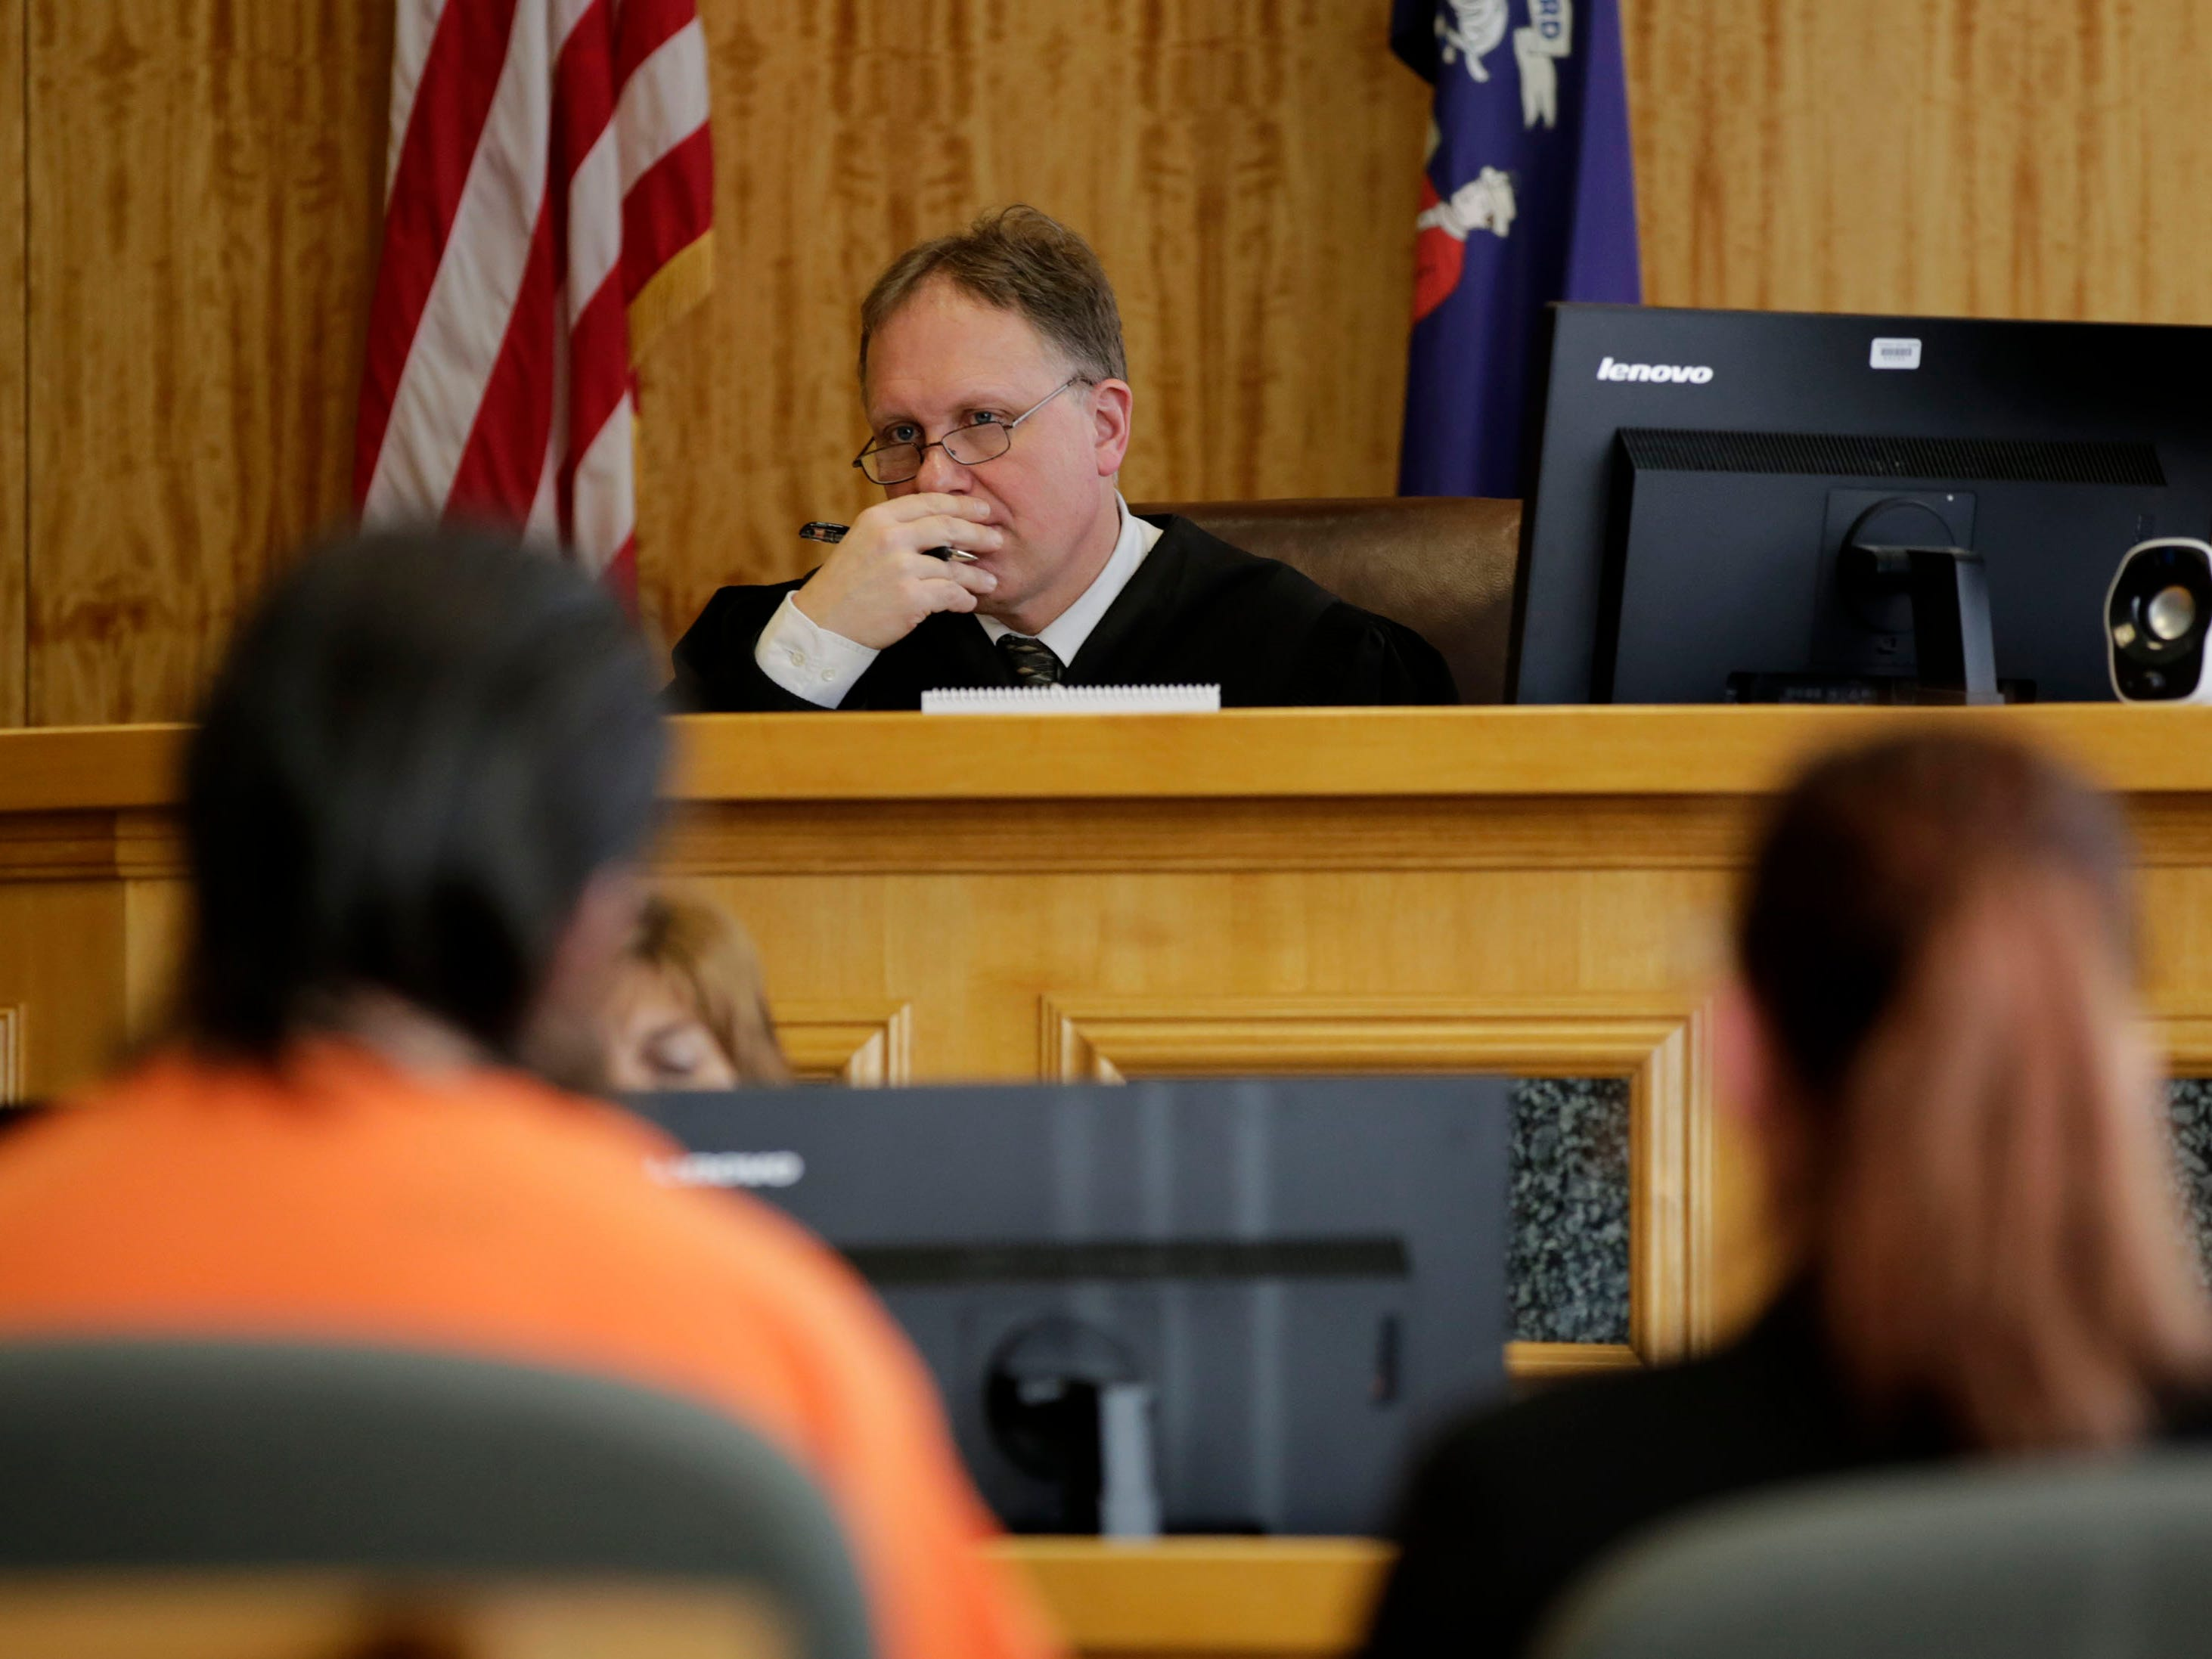 Circuit Court Judge Todd Wolf listens to testimony during a sentencing hearing for James Georgeson on Friday, December 14, 2018, at the Wood County courthouse in Wisconsin Rapids, Wis.Tork Mason/USA TODAY NETWORK-Wisconsin